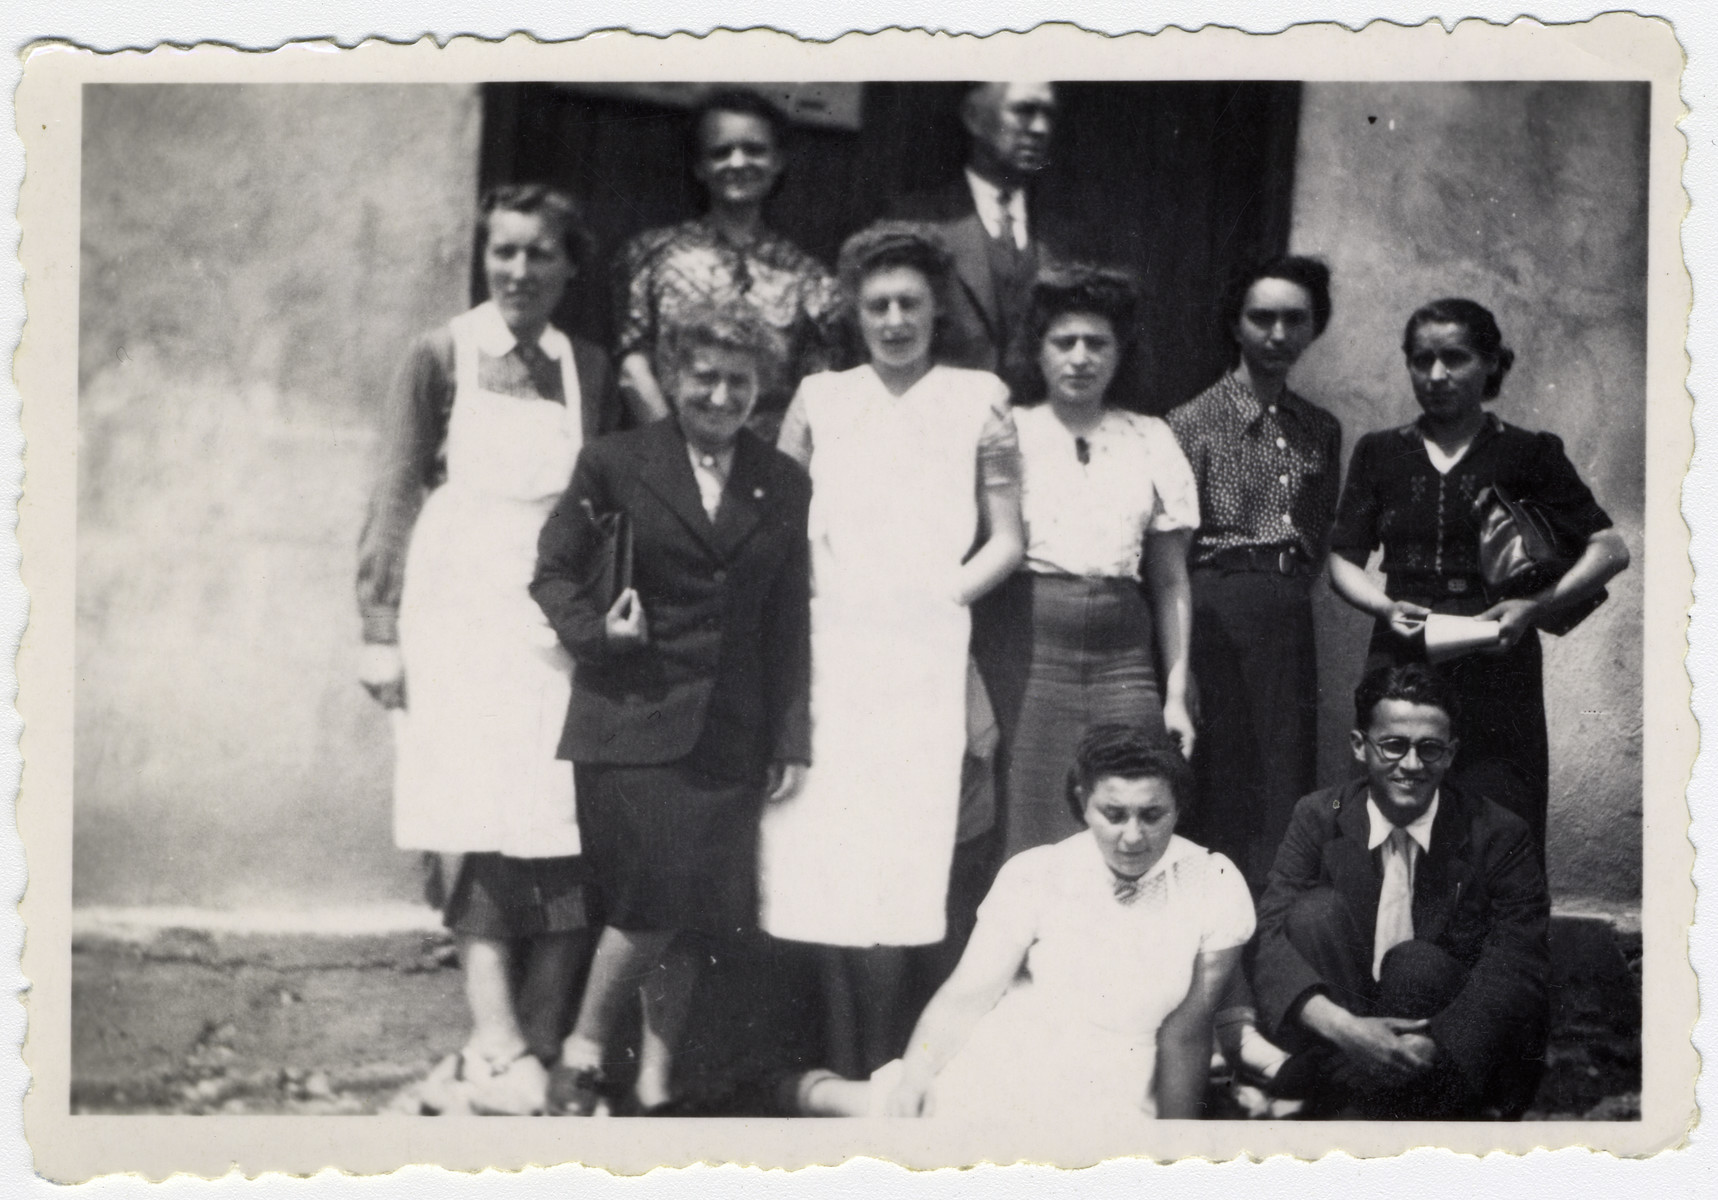 """Volunteer resident social workers and OSE staff pose for a group portrait  in the Rivesaltes internment camp.   Original caption reads: """"The workers."""""""